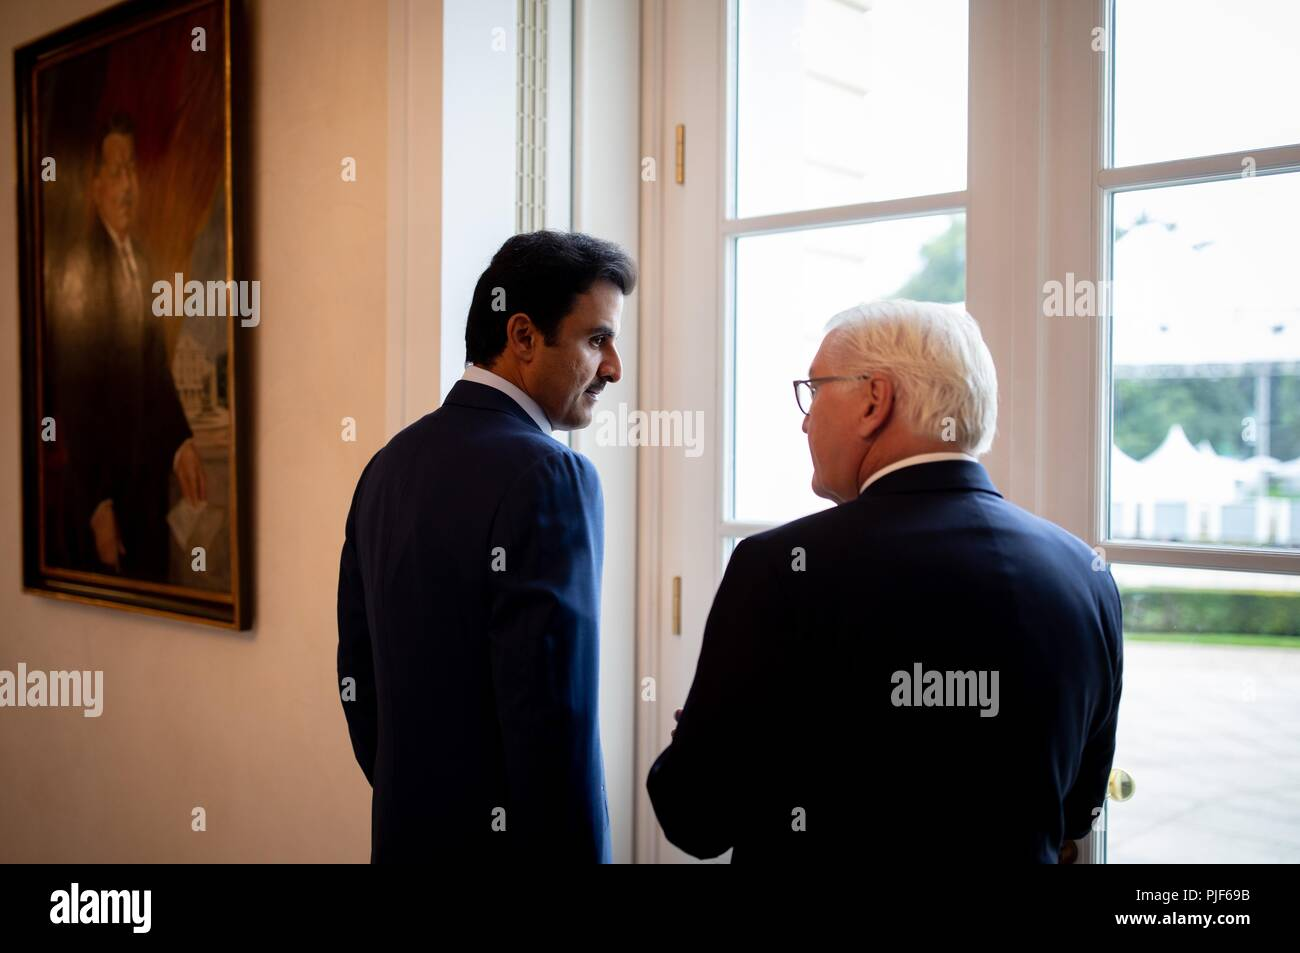 Berlin, Germany. 07th Sep, 2018. 07.09.2018, Berlin: Federal President Frank-Walter Steinmeier (r) stands with the Emir of Qatar, Sheikh Tamim bin Hamad Al-Thani, at a window of Bellevue Palace. Credit: Kay Nietfeld/dpa/Alamy Live News - Stock Image